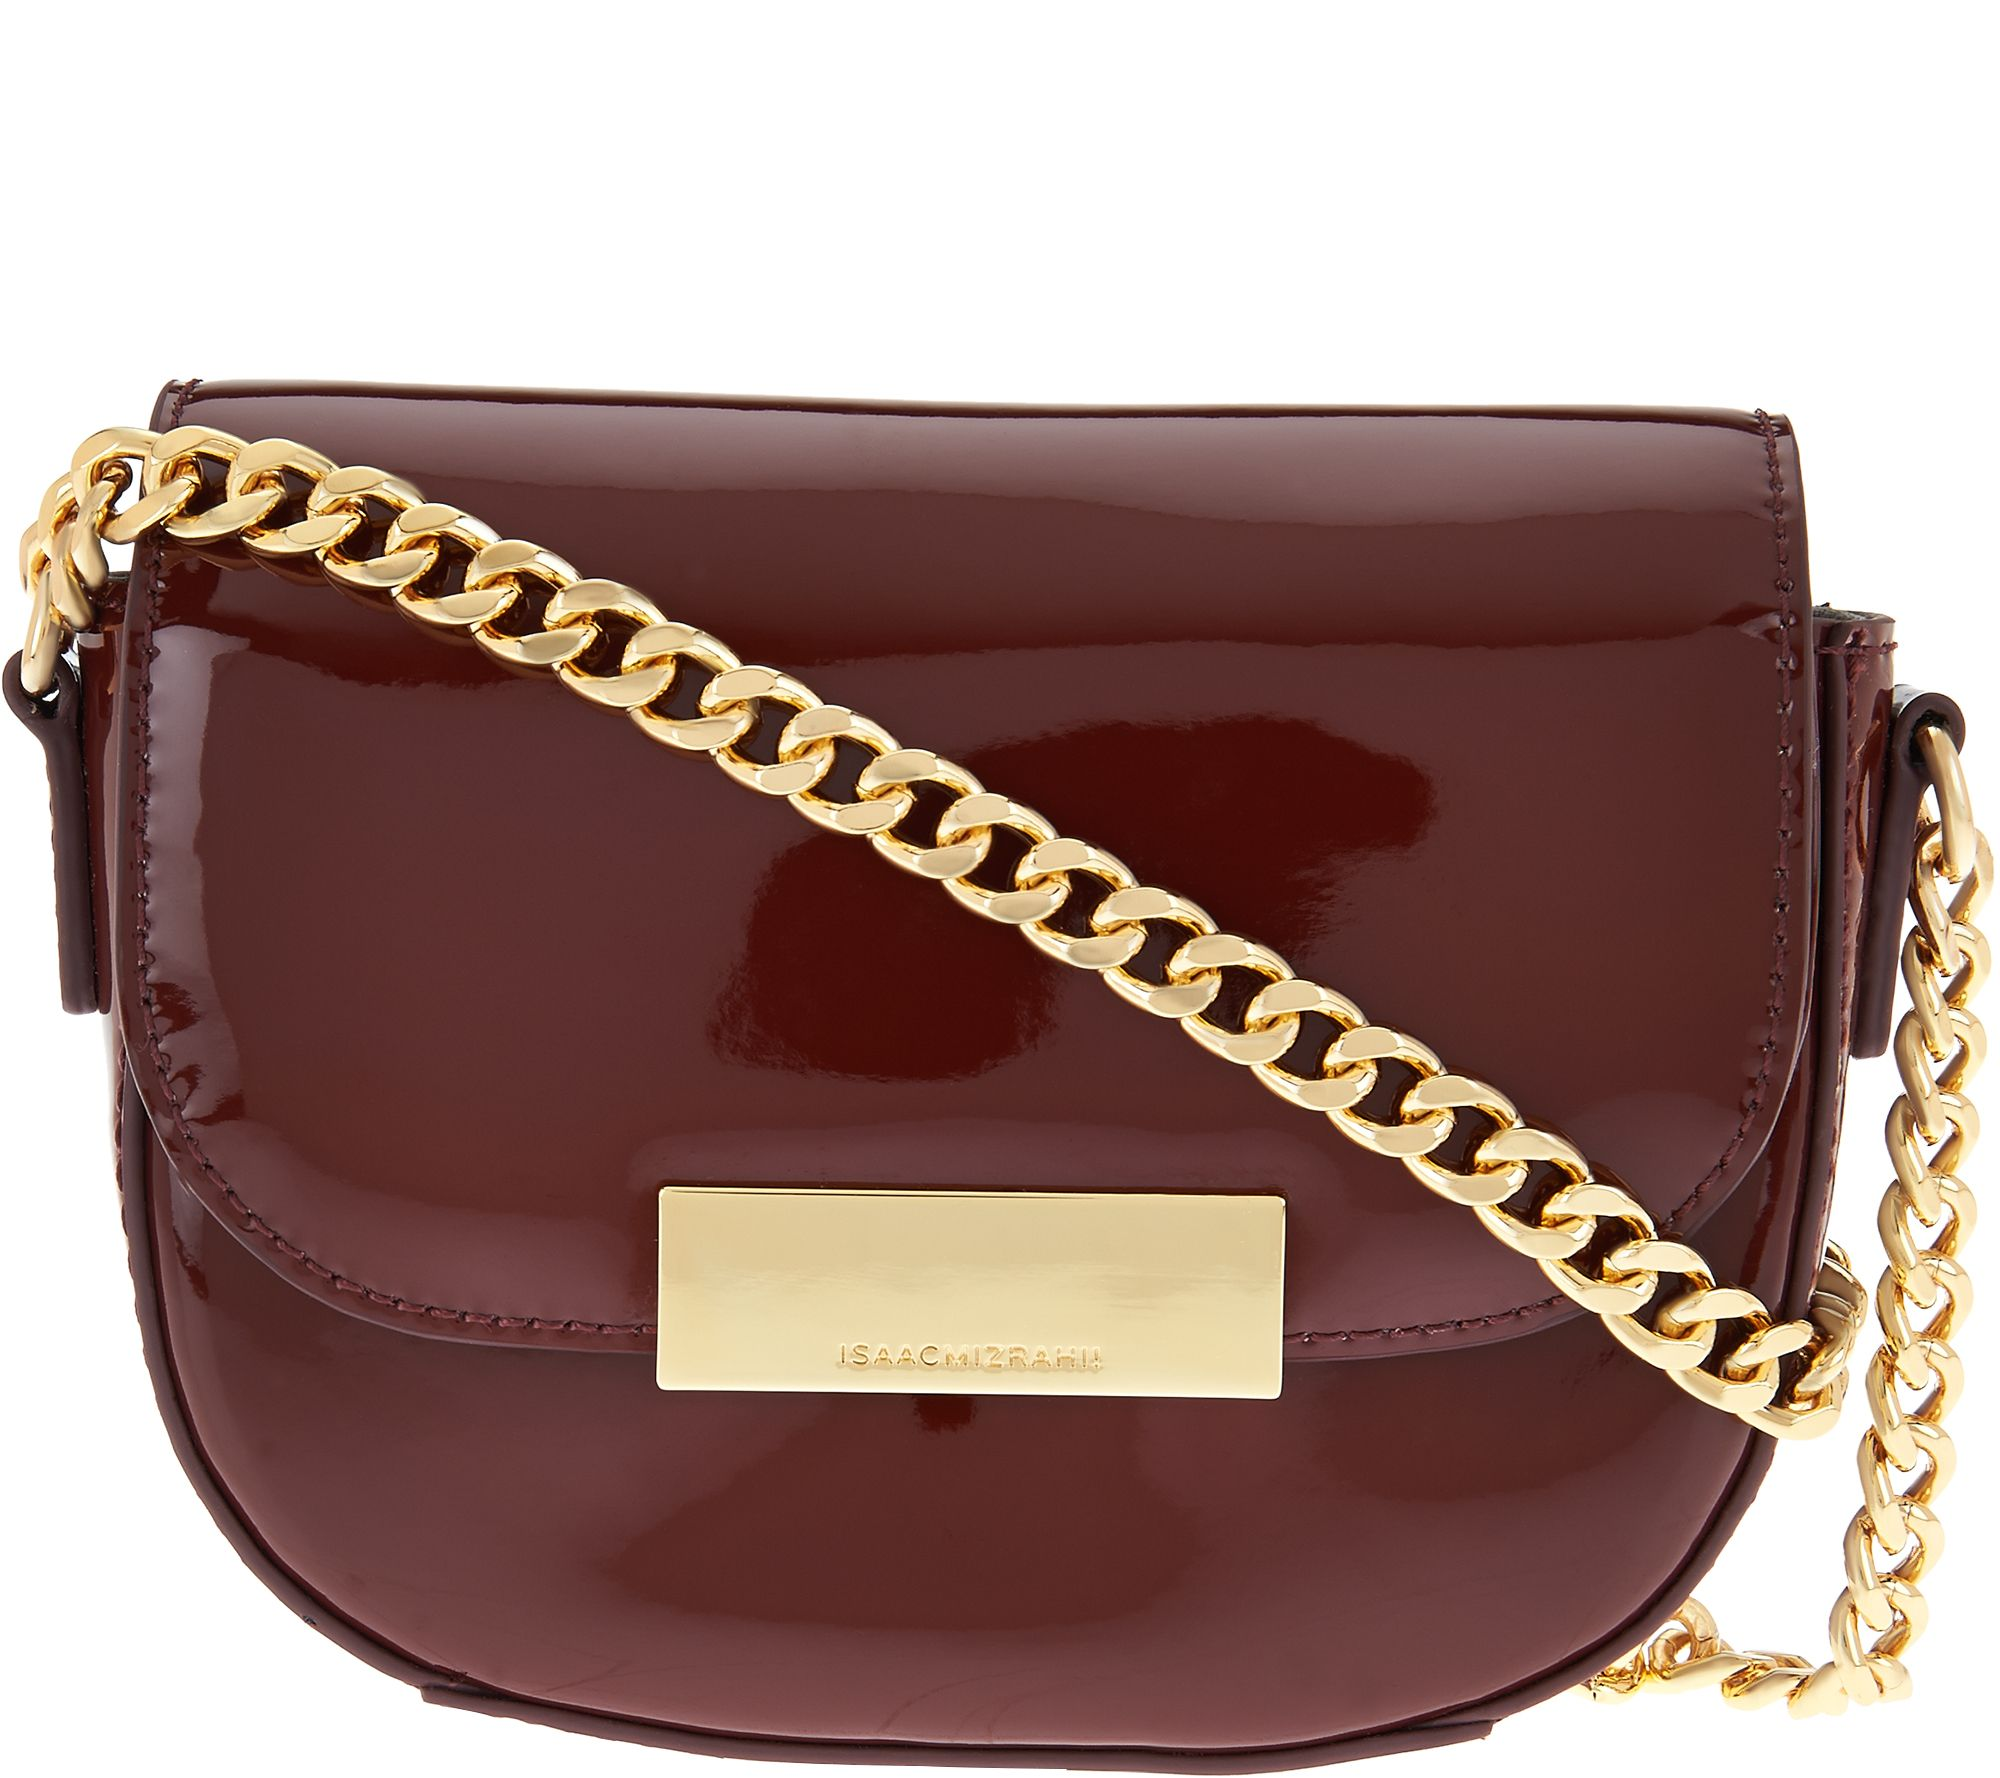 Patent Leather Chain Strap Small Handbag Page 1 Qvc